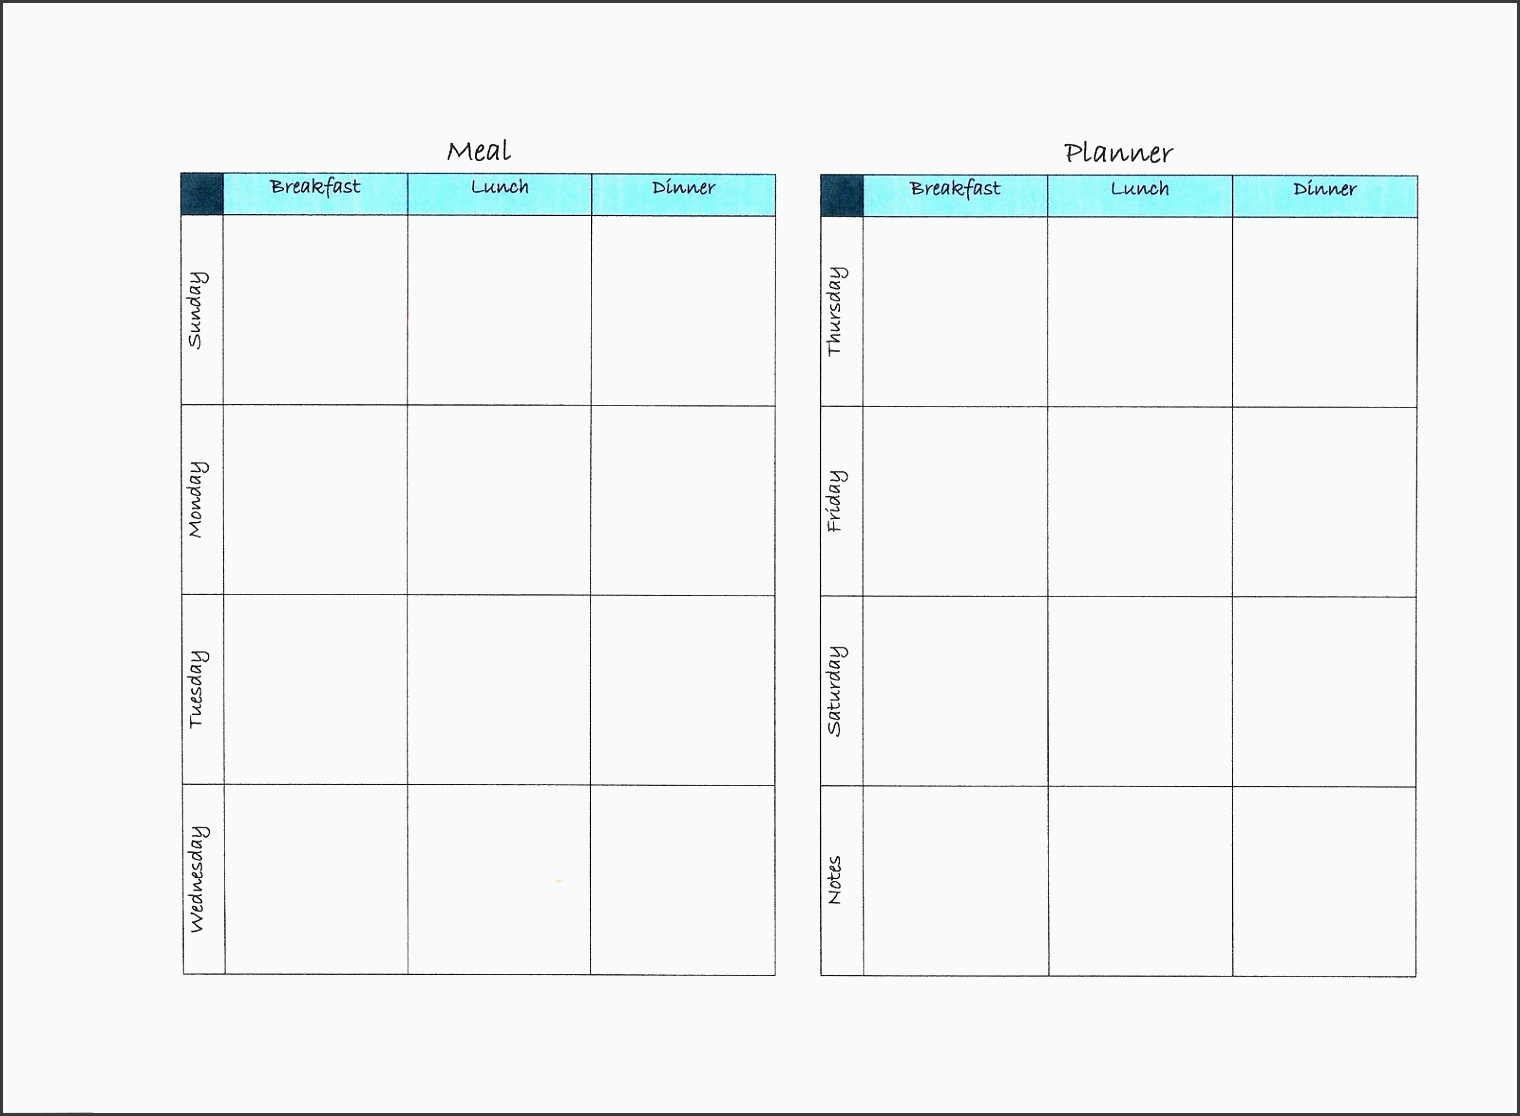 timetable outline template - 11 free exercise planner outline sampletemplatess